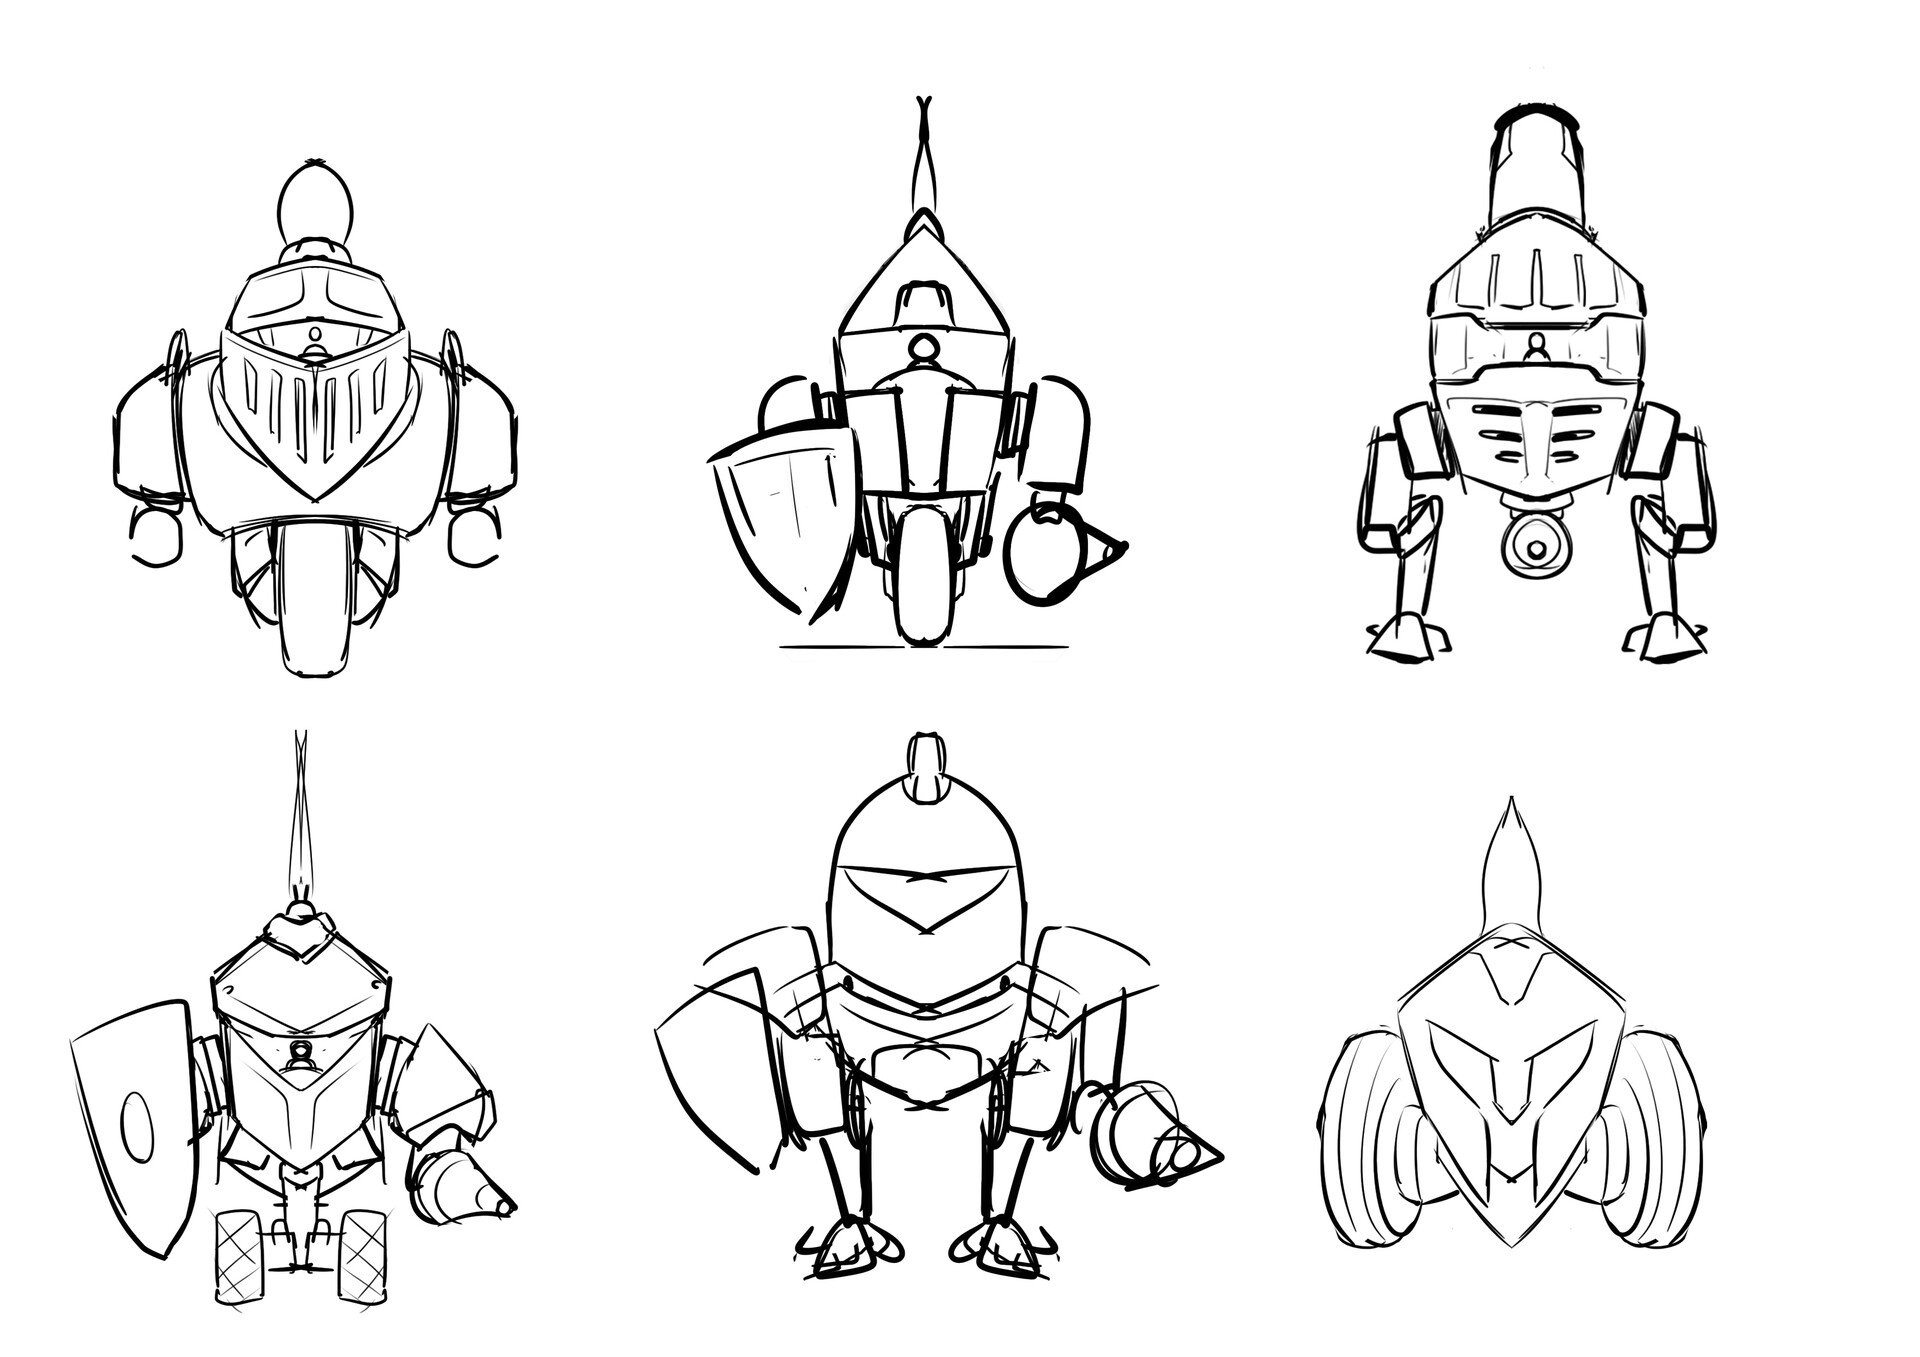 Jake bullock mech 01 sketches